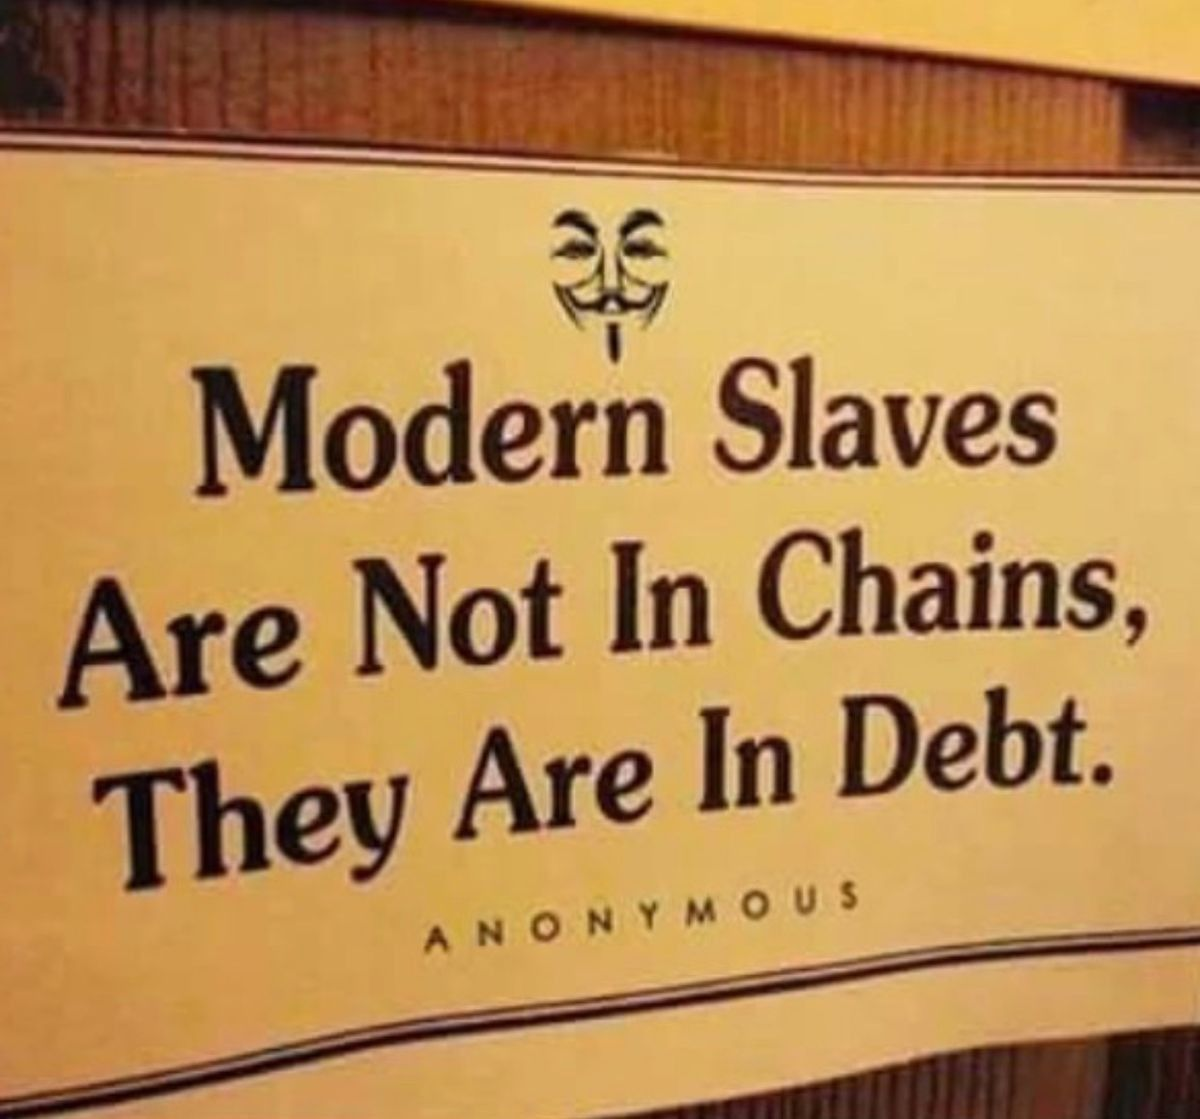 Pin By Quotes For Success On Biblical Finances Money Quotes Quotable Quotes Debt To Income Ratio